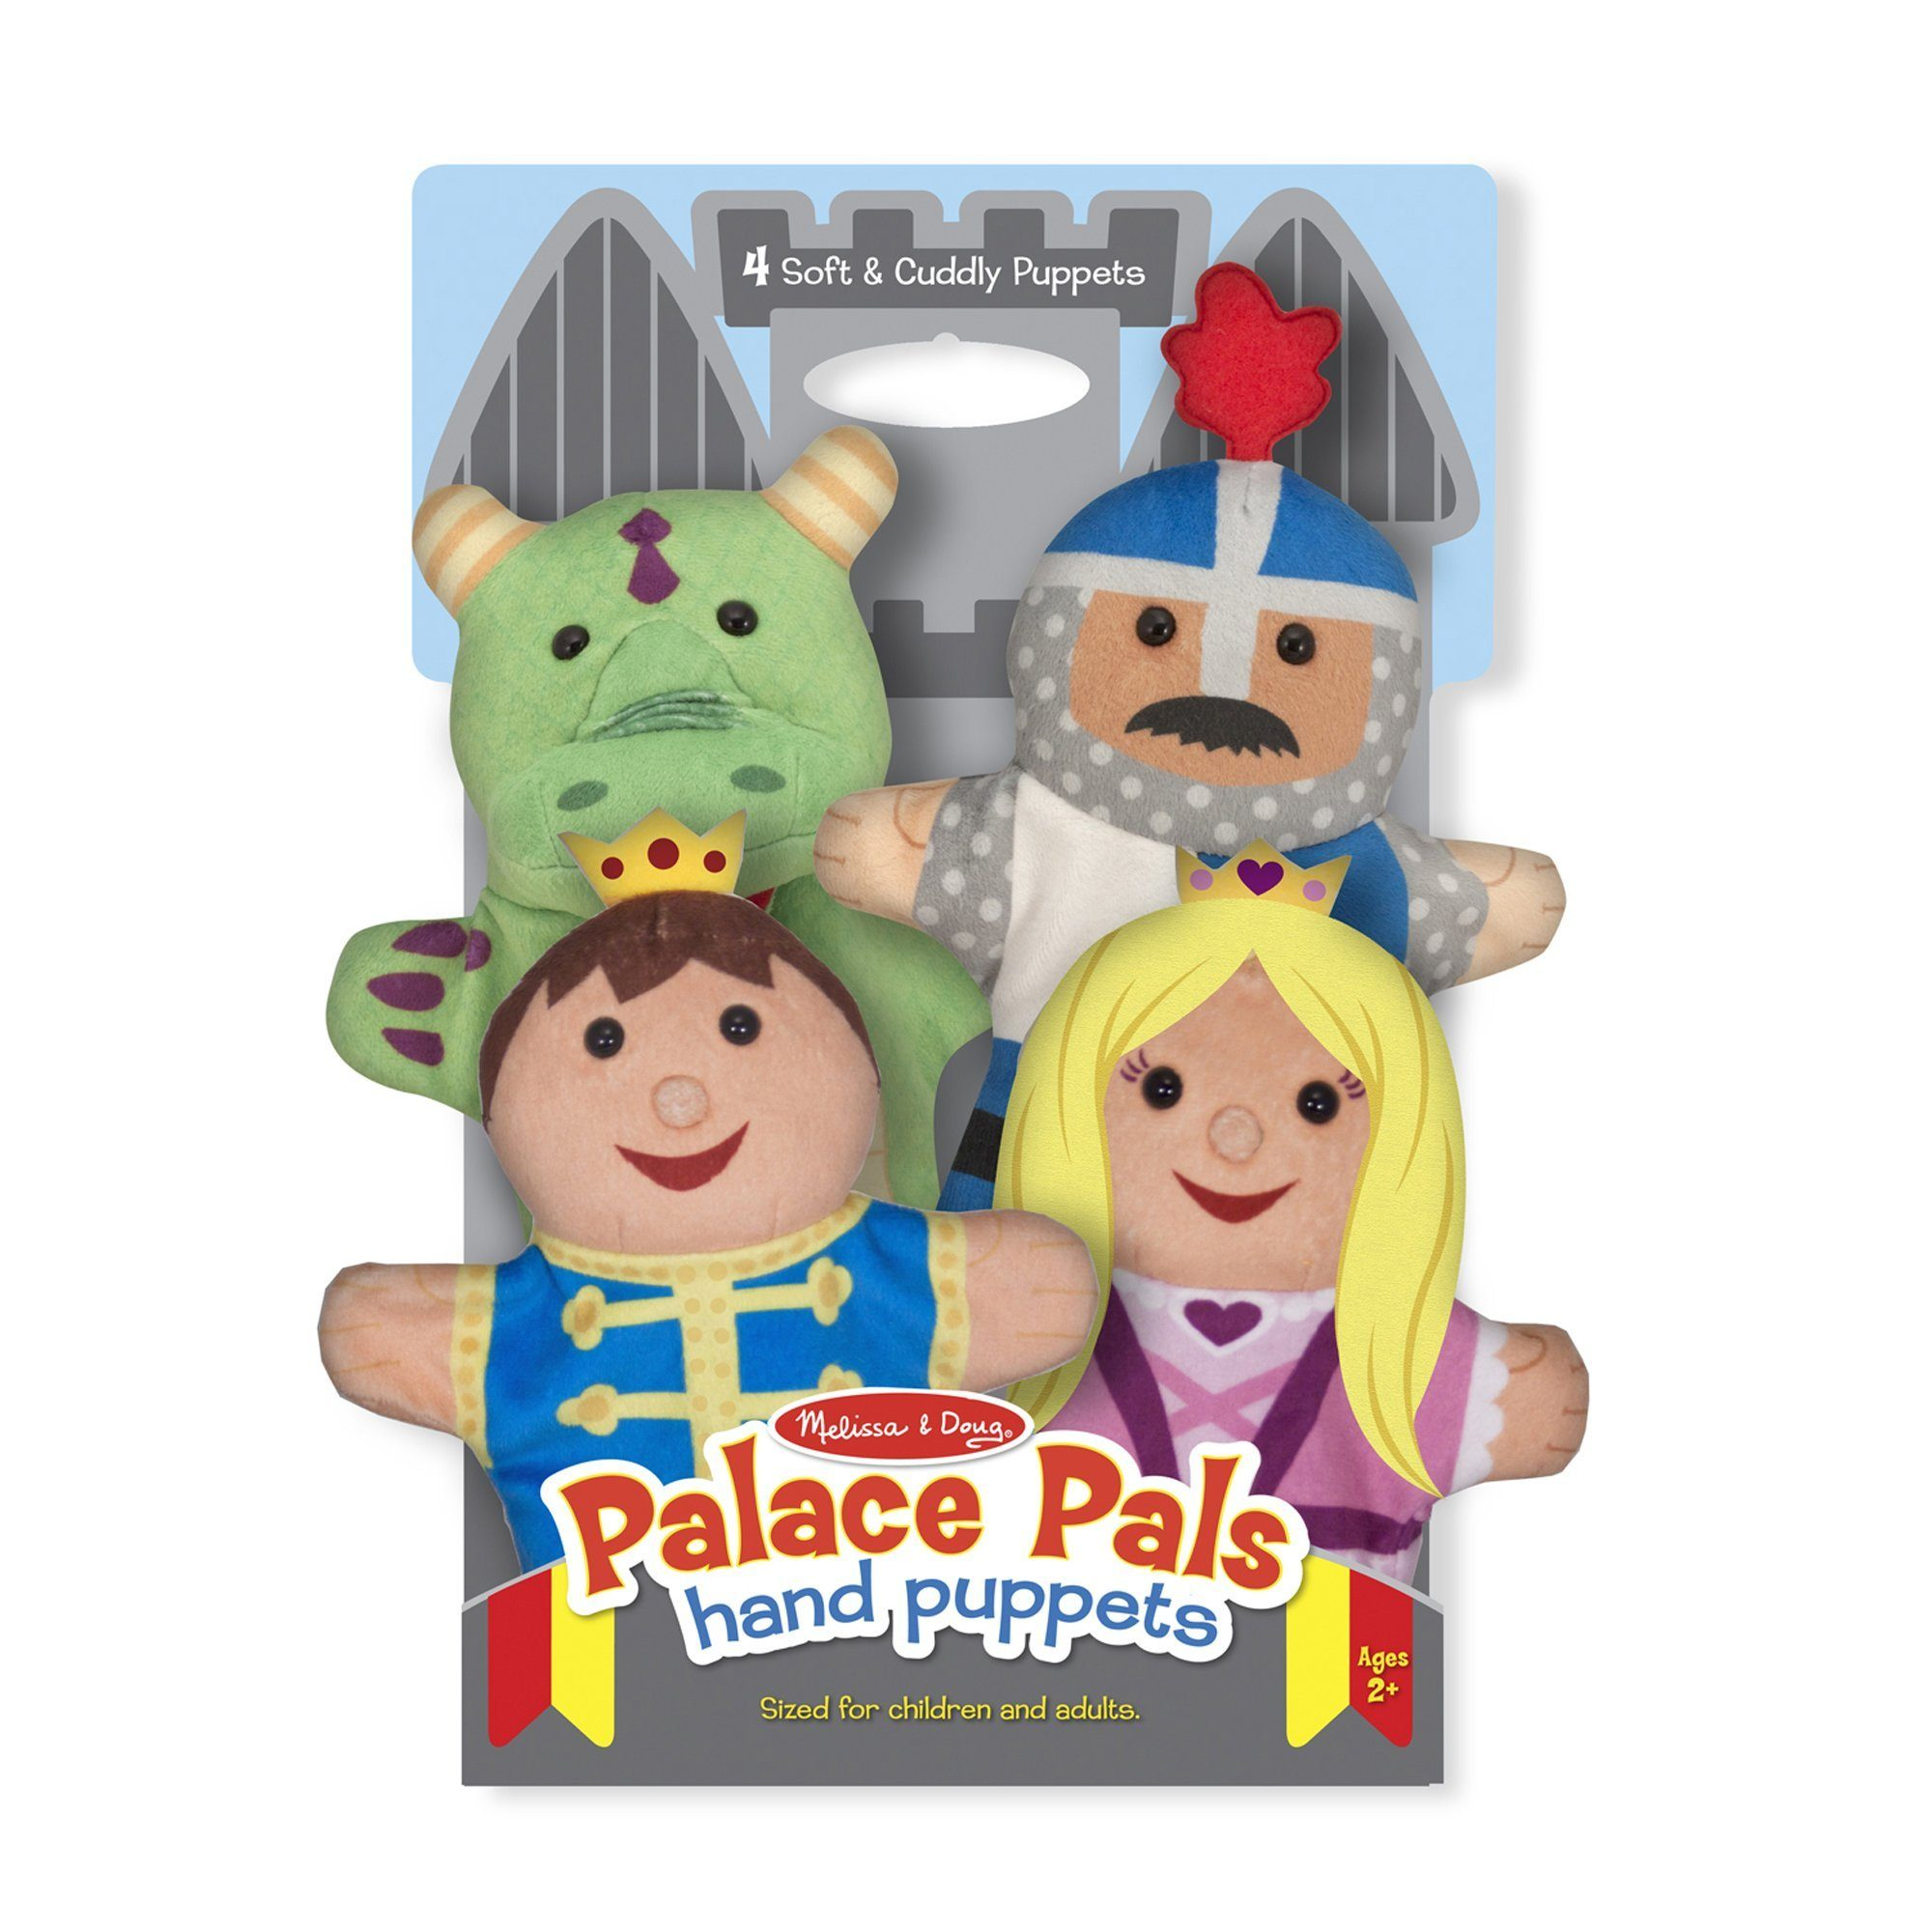 Melissa & Doug Palace Pals Hand Puppets (Set of 4) - Prince, Princess, Knight, and Dragon - TOYBOX Toy Shop